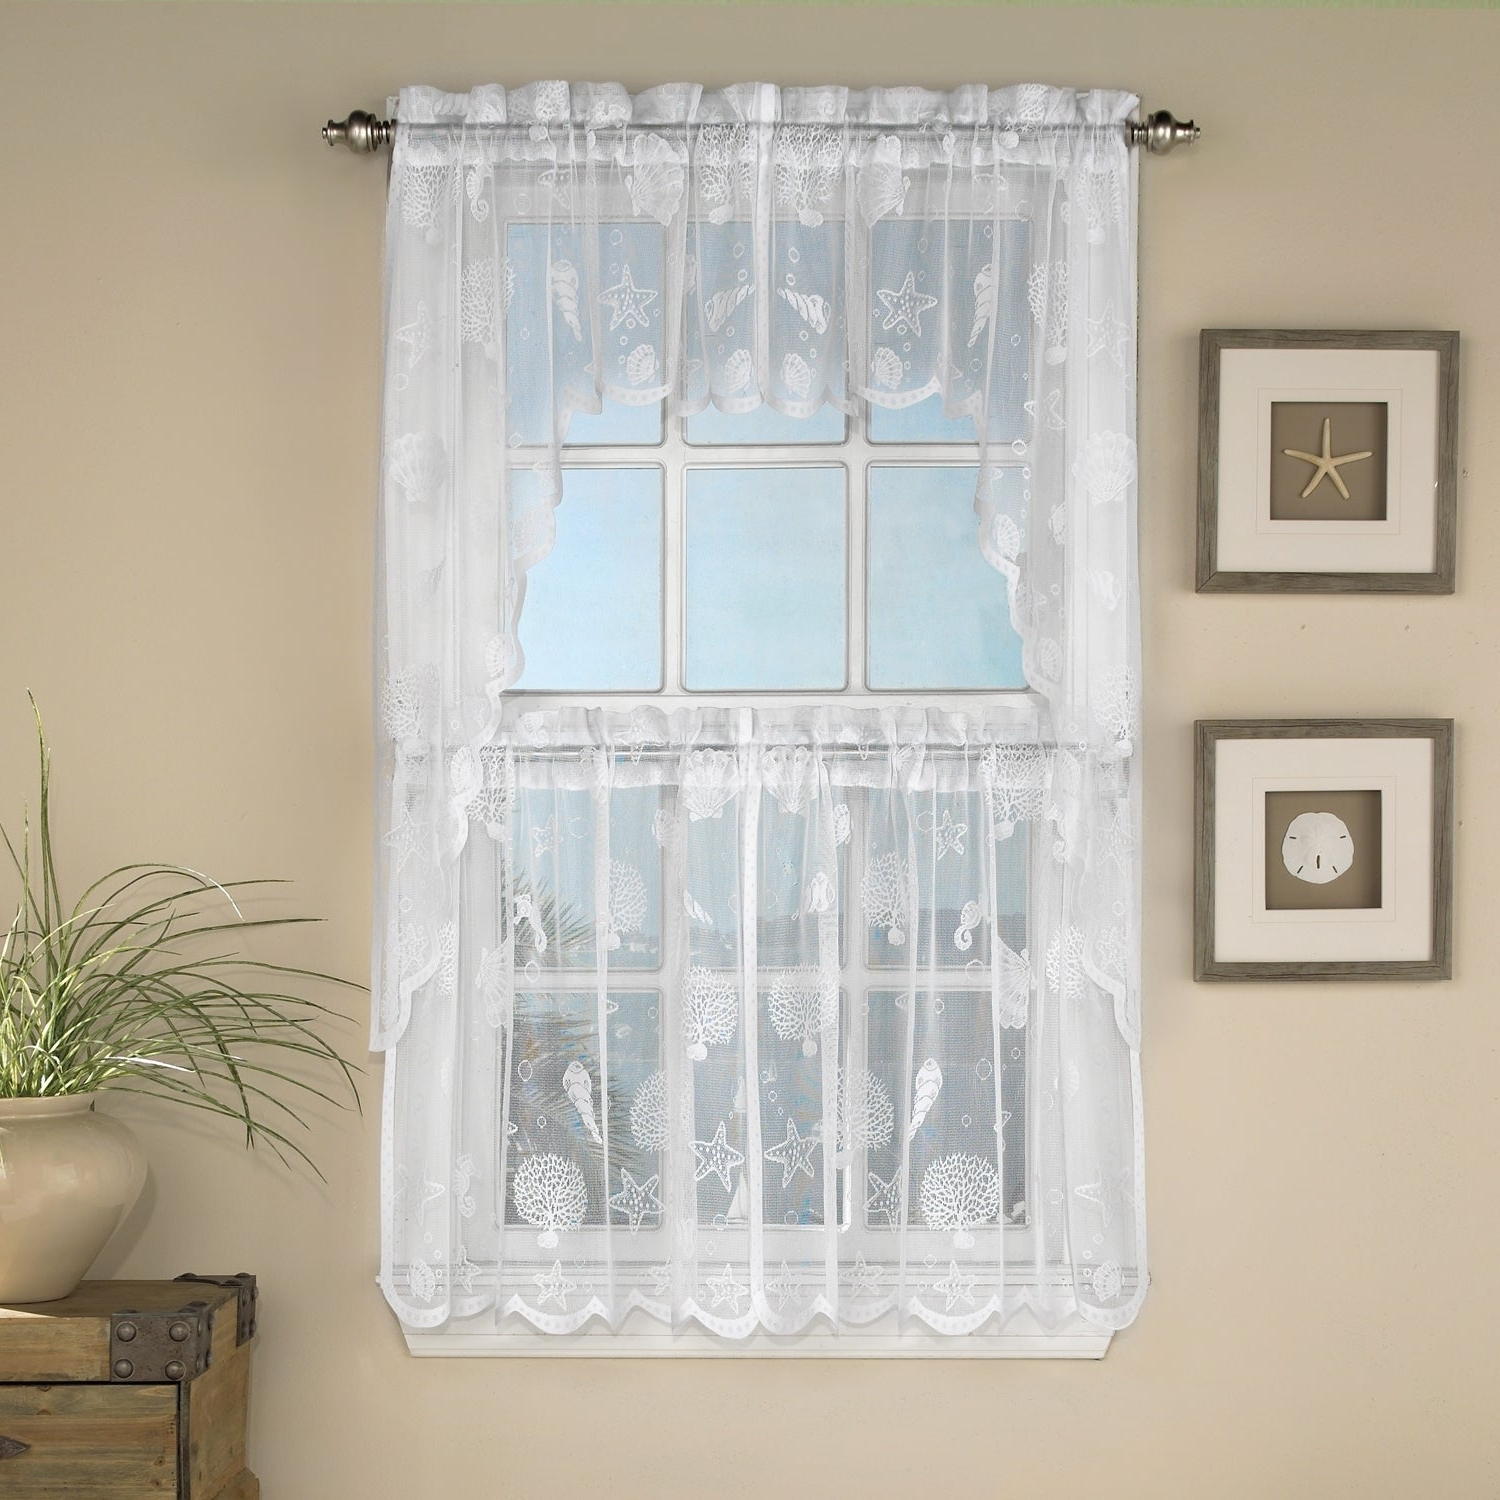 Preferred Marine Life Motif Knitted Lace Window Curtain Pieces In Elegant White Priscilla Lace Kitchen Curtain Pieces (View 12 of 20)